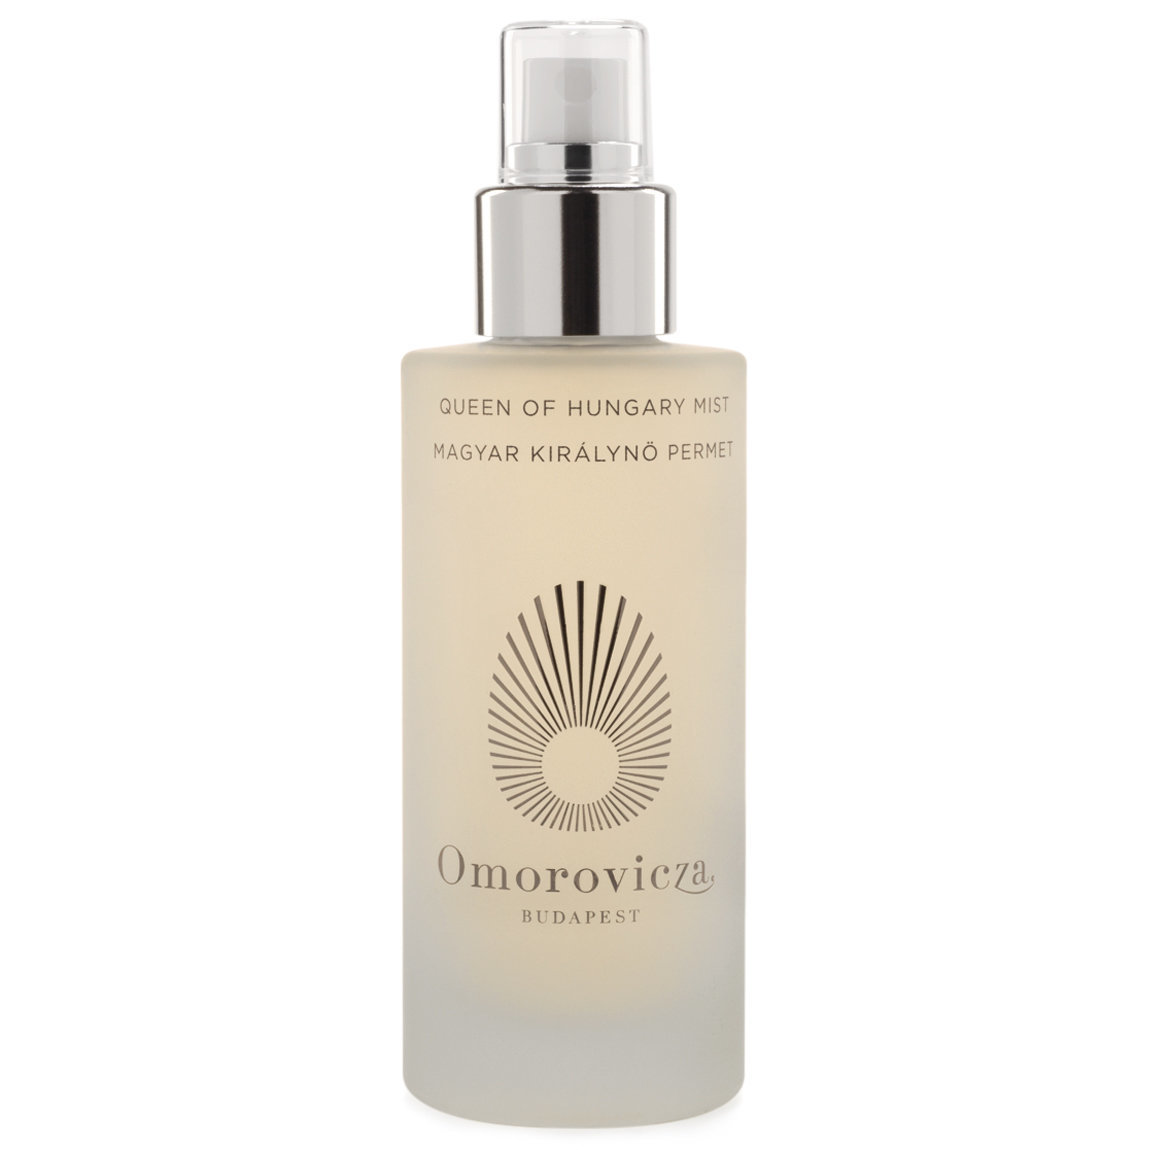 Omorovicza Queen of Hungary Mist 100 ml alternative view 1 - product swatch.